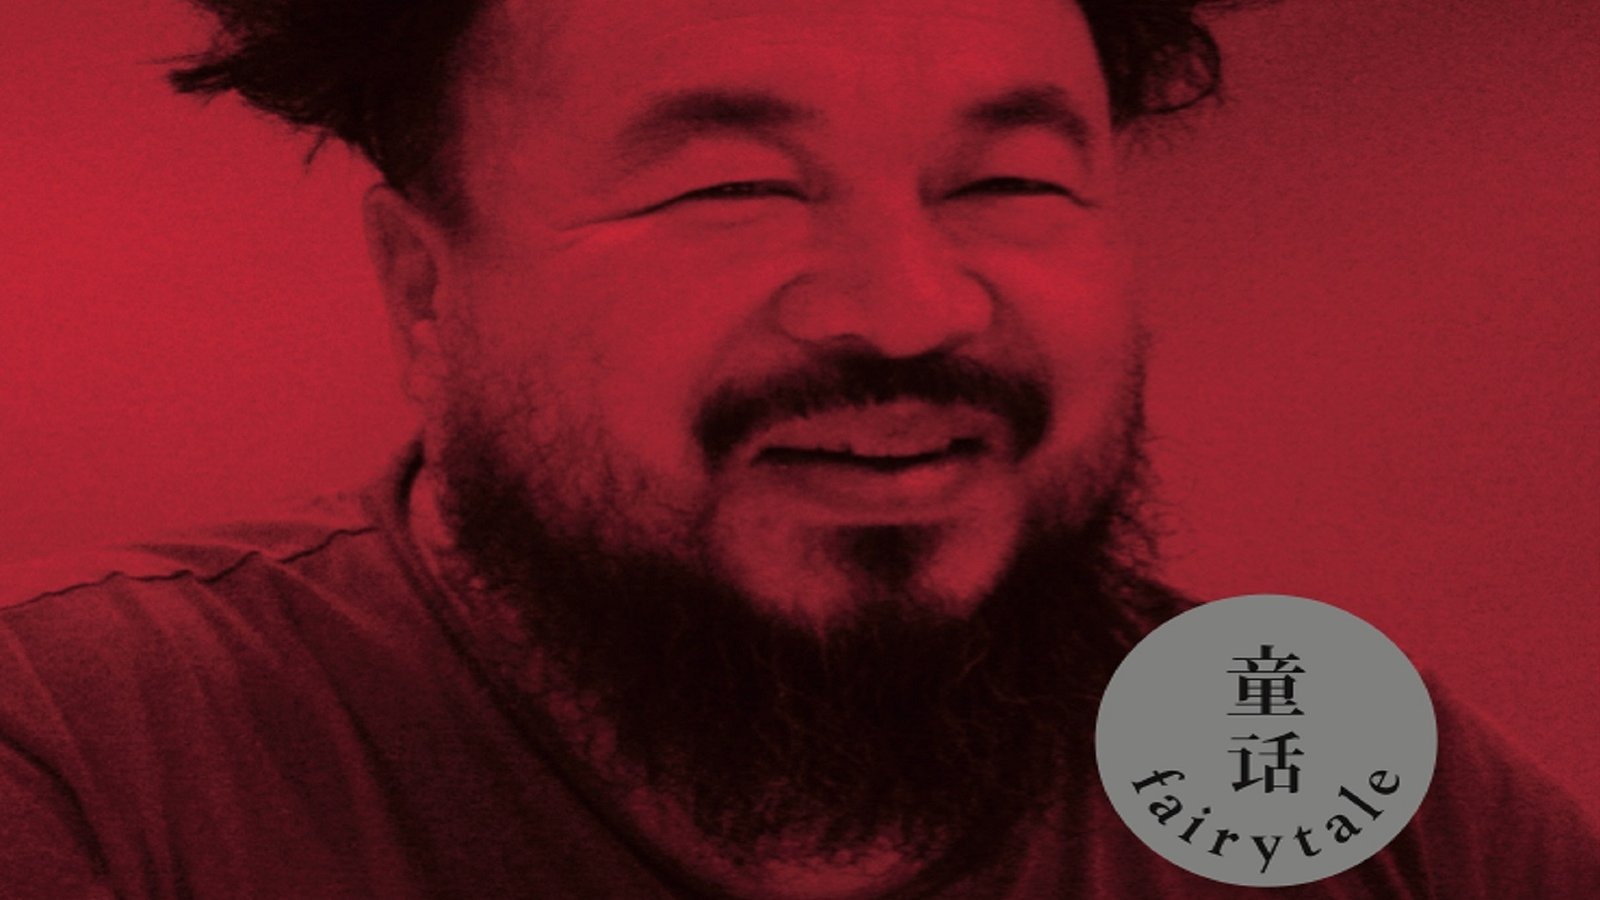 Fairytale - Contemporary Artist Ai Weiwei Invites Chinese Citizens to Attend His Art Exhibition in Germany